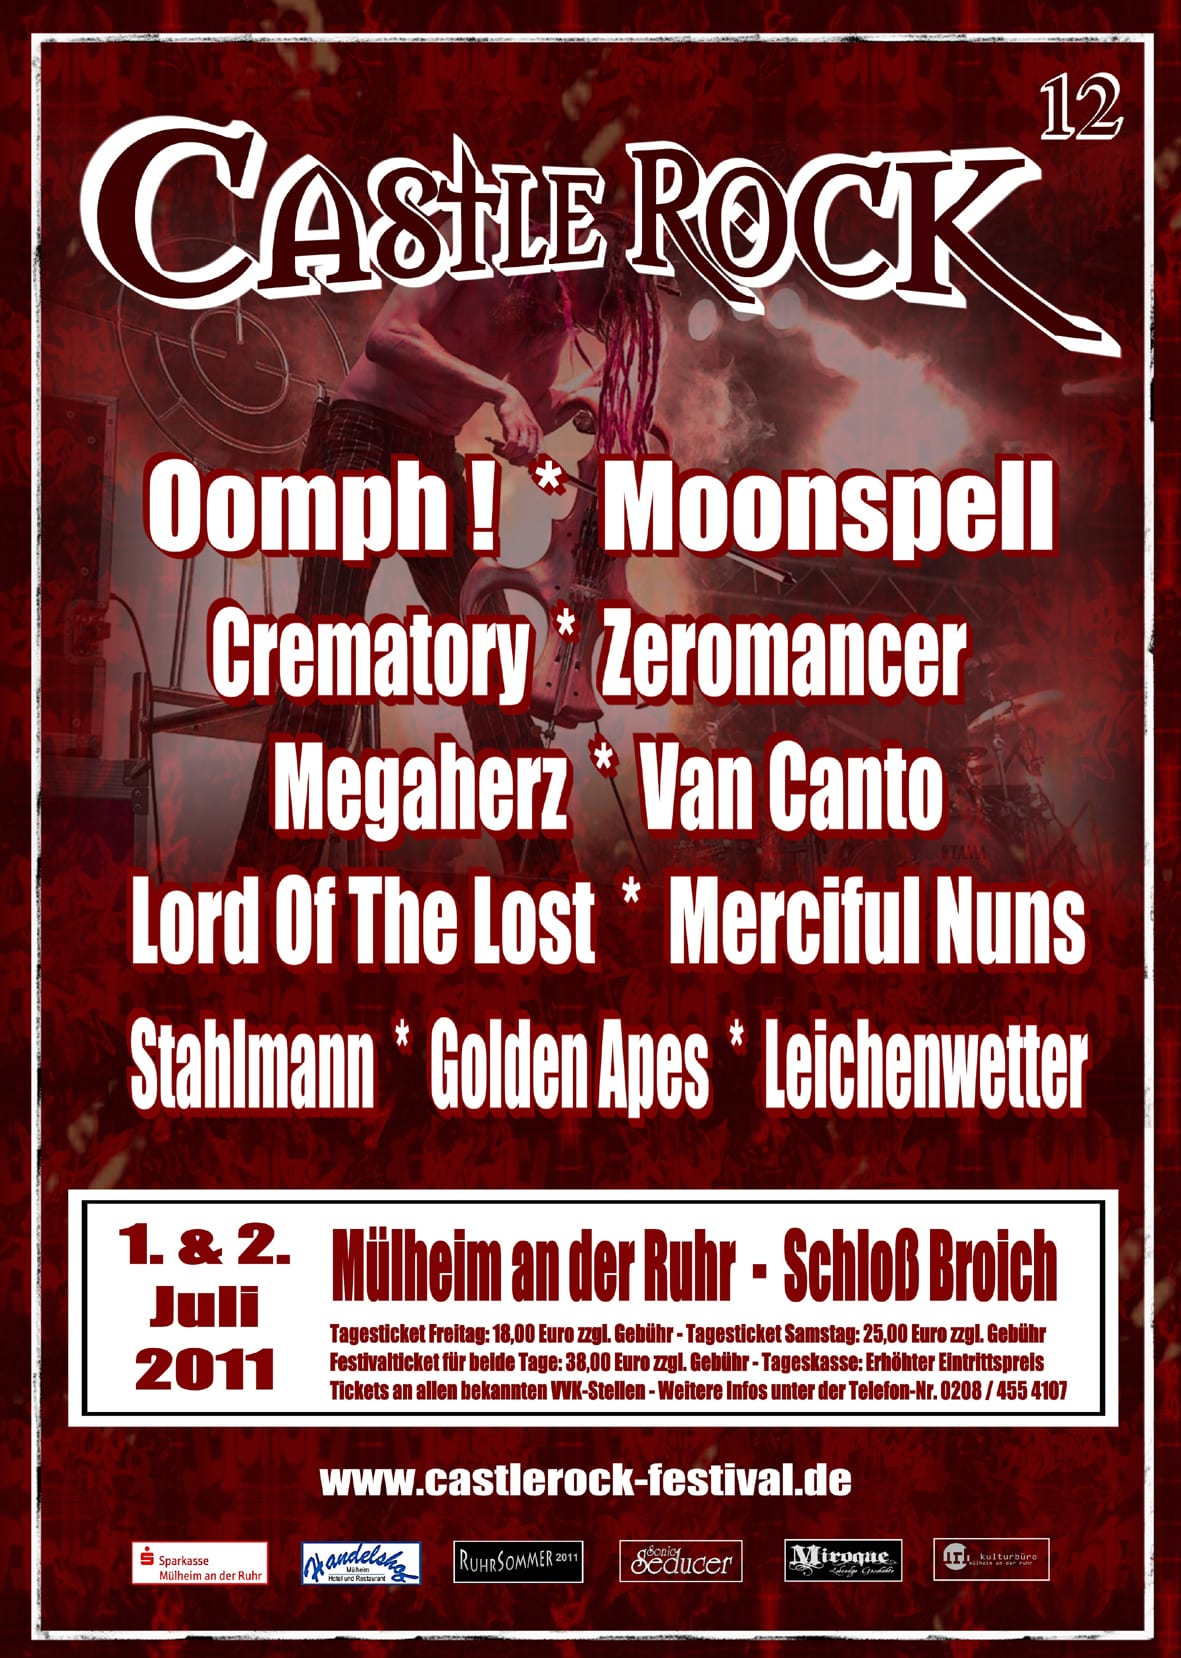 Castle Rock 2011 - Flyer (Quelle/Autor: Michael Bones/Kulturbetrieb)